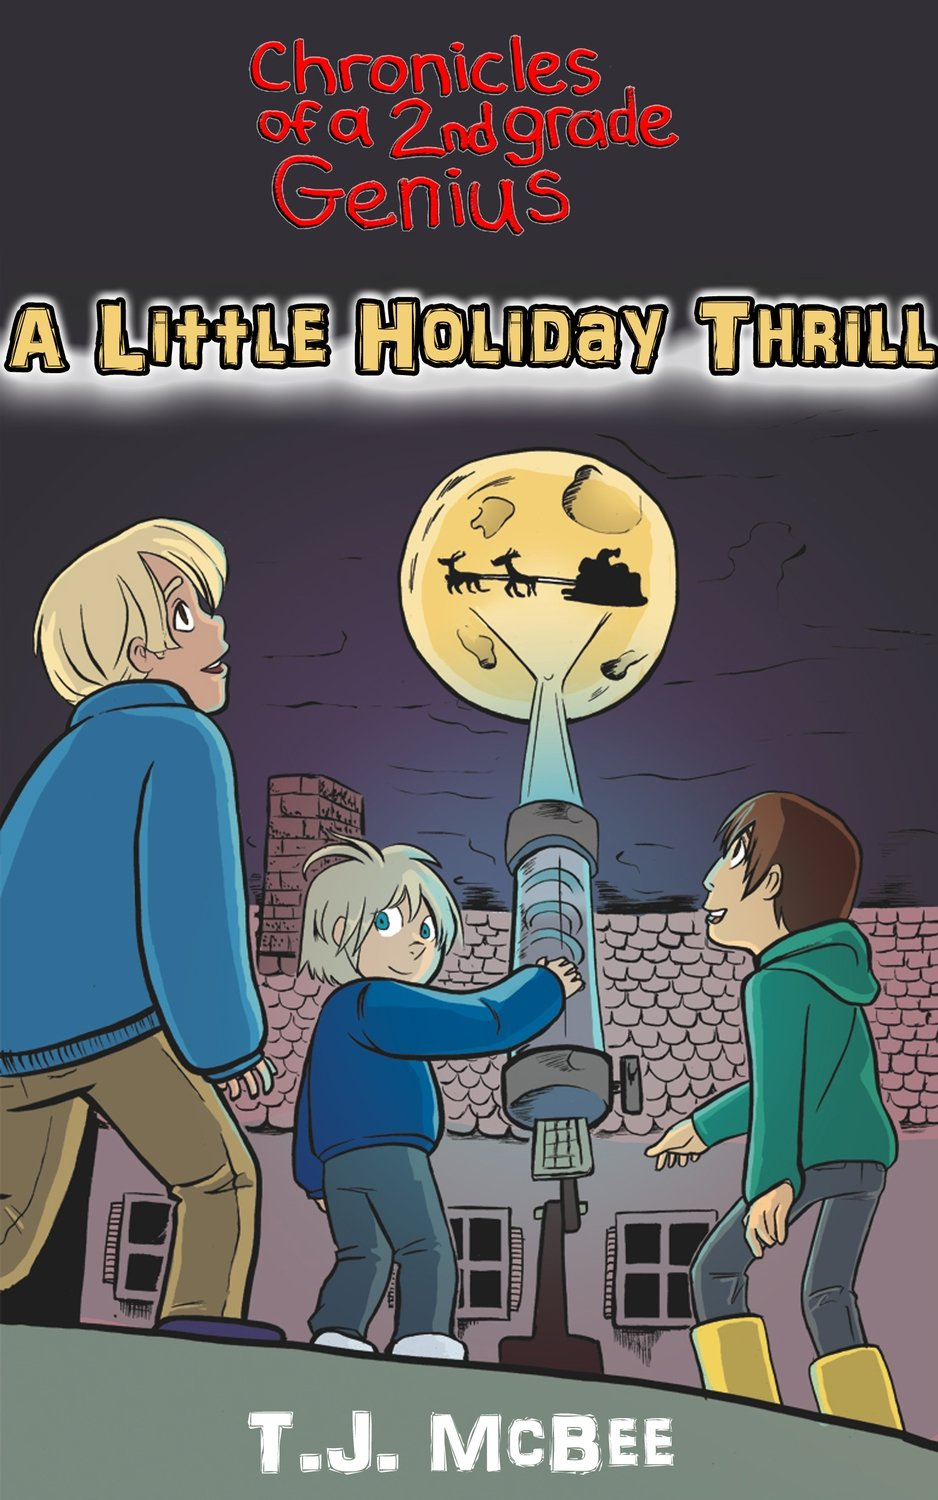 A Little Holiday Thrill